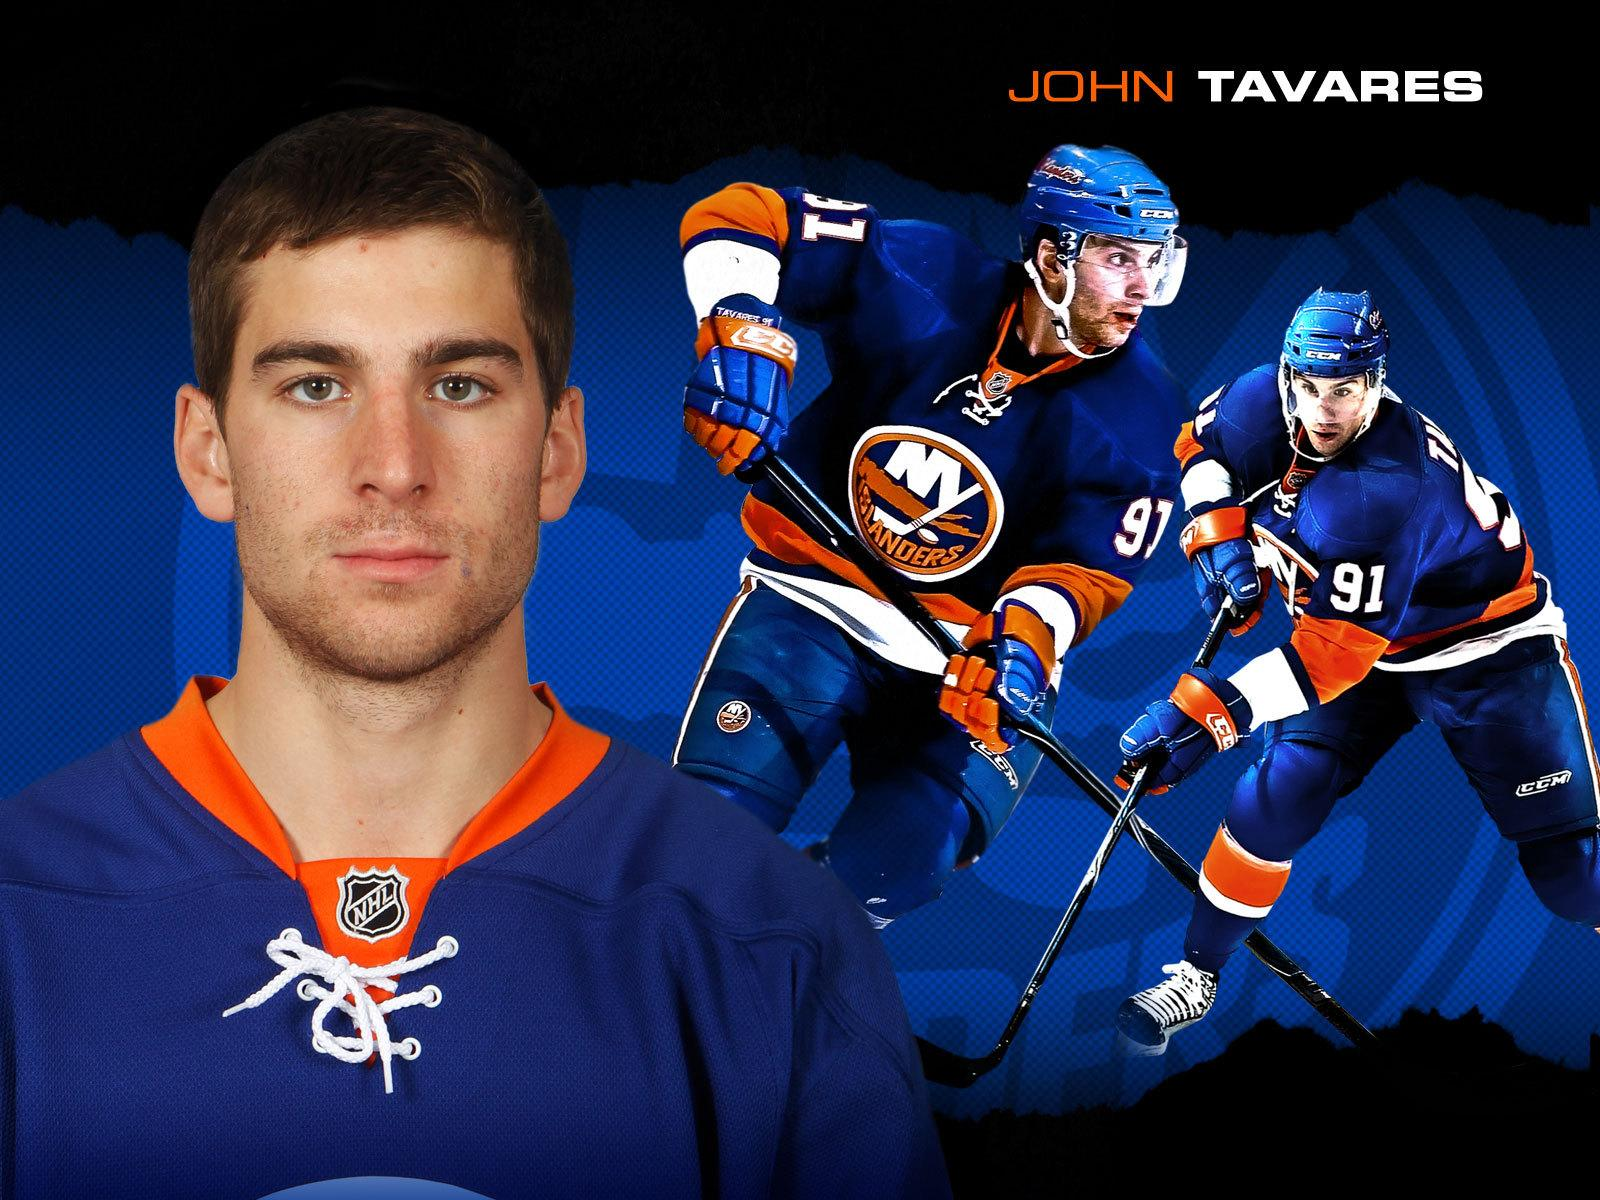 Best Hockey player John Tavares wallpapers and images - wallpapers ...